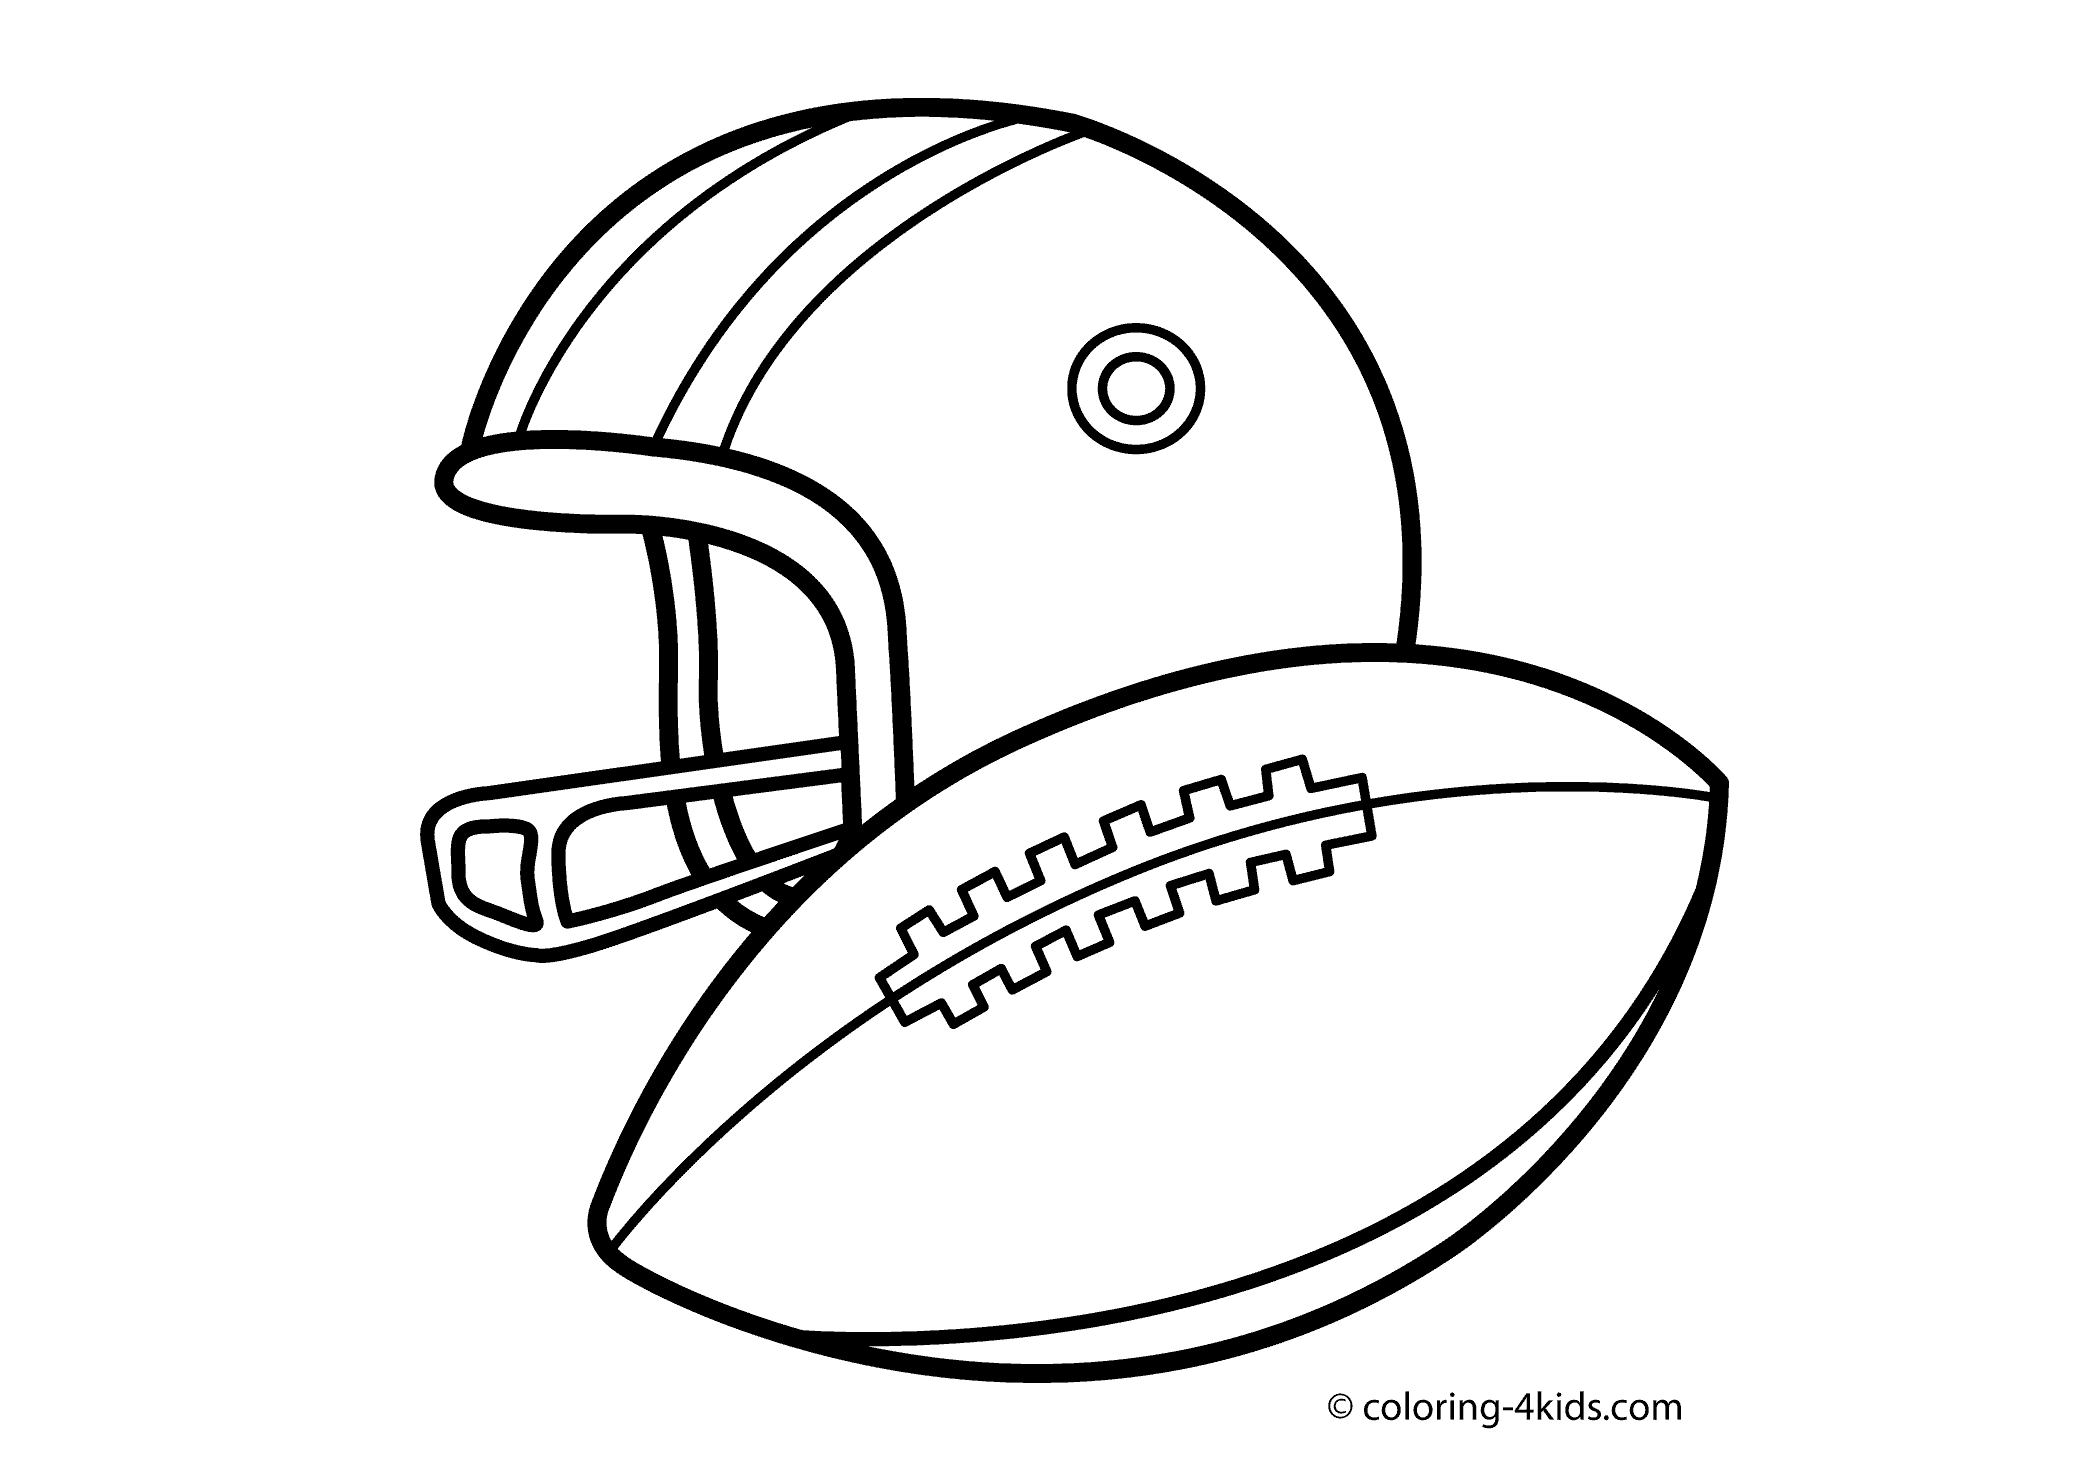 sports coloring pages - sports balls coloring pages